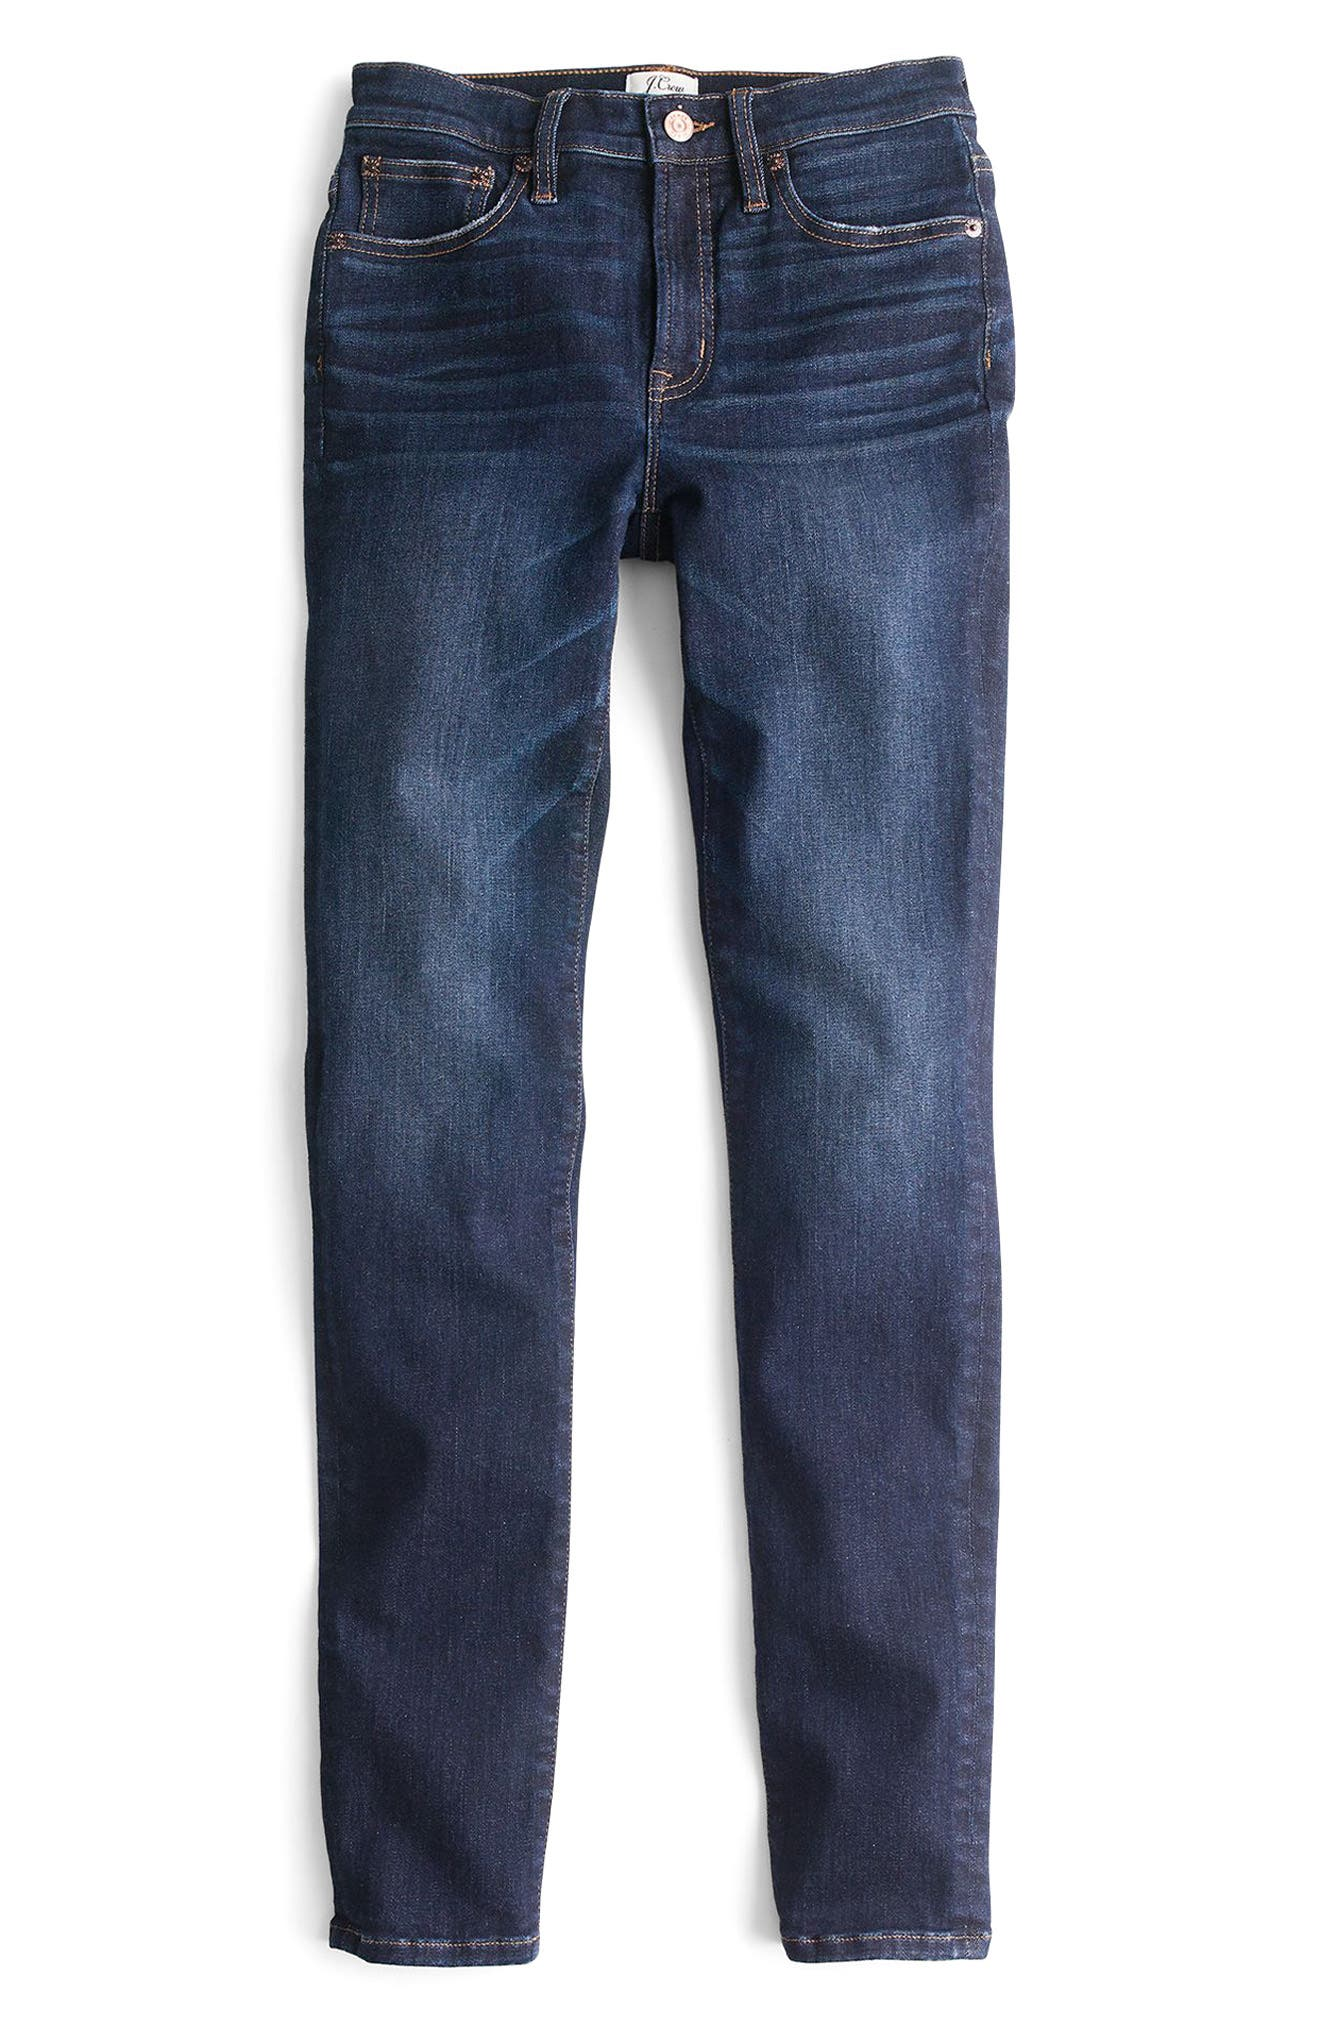 J.Crew High Rise Toothpick Jeans,                             Alternate thumbnail 2, color,                             Solano Wash